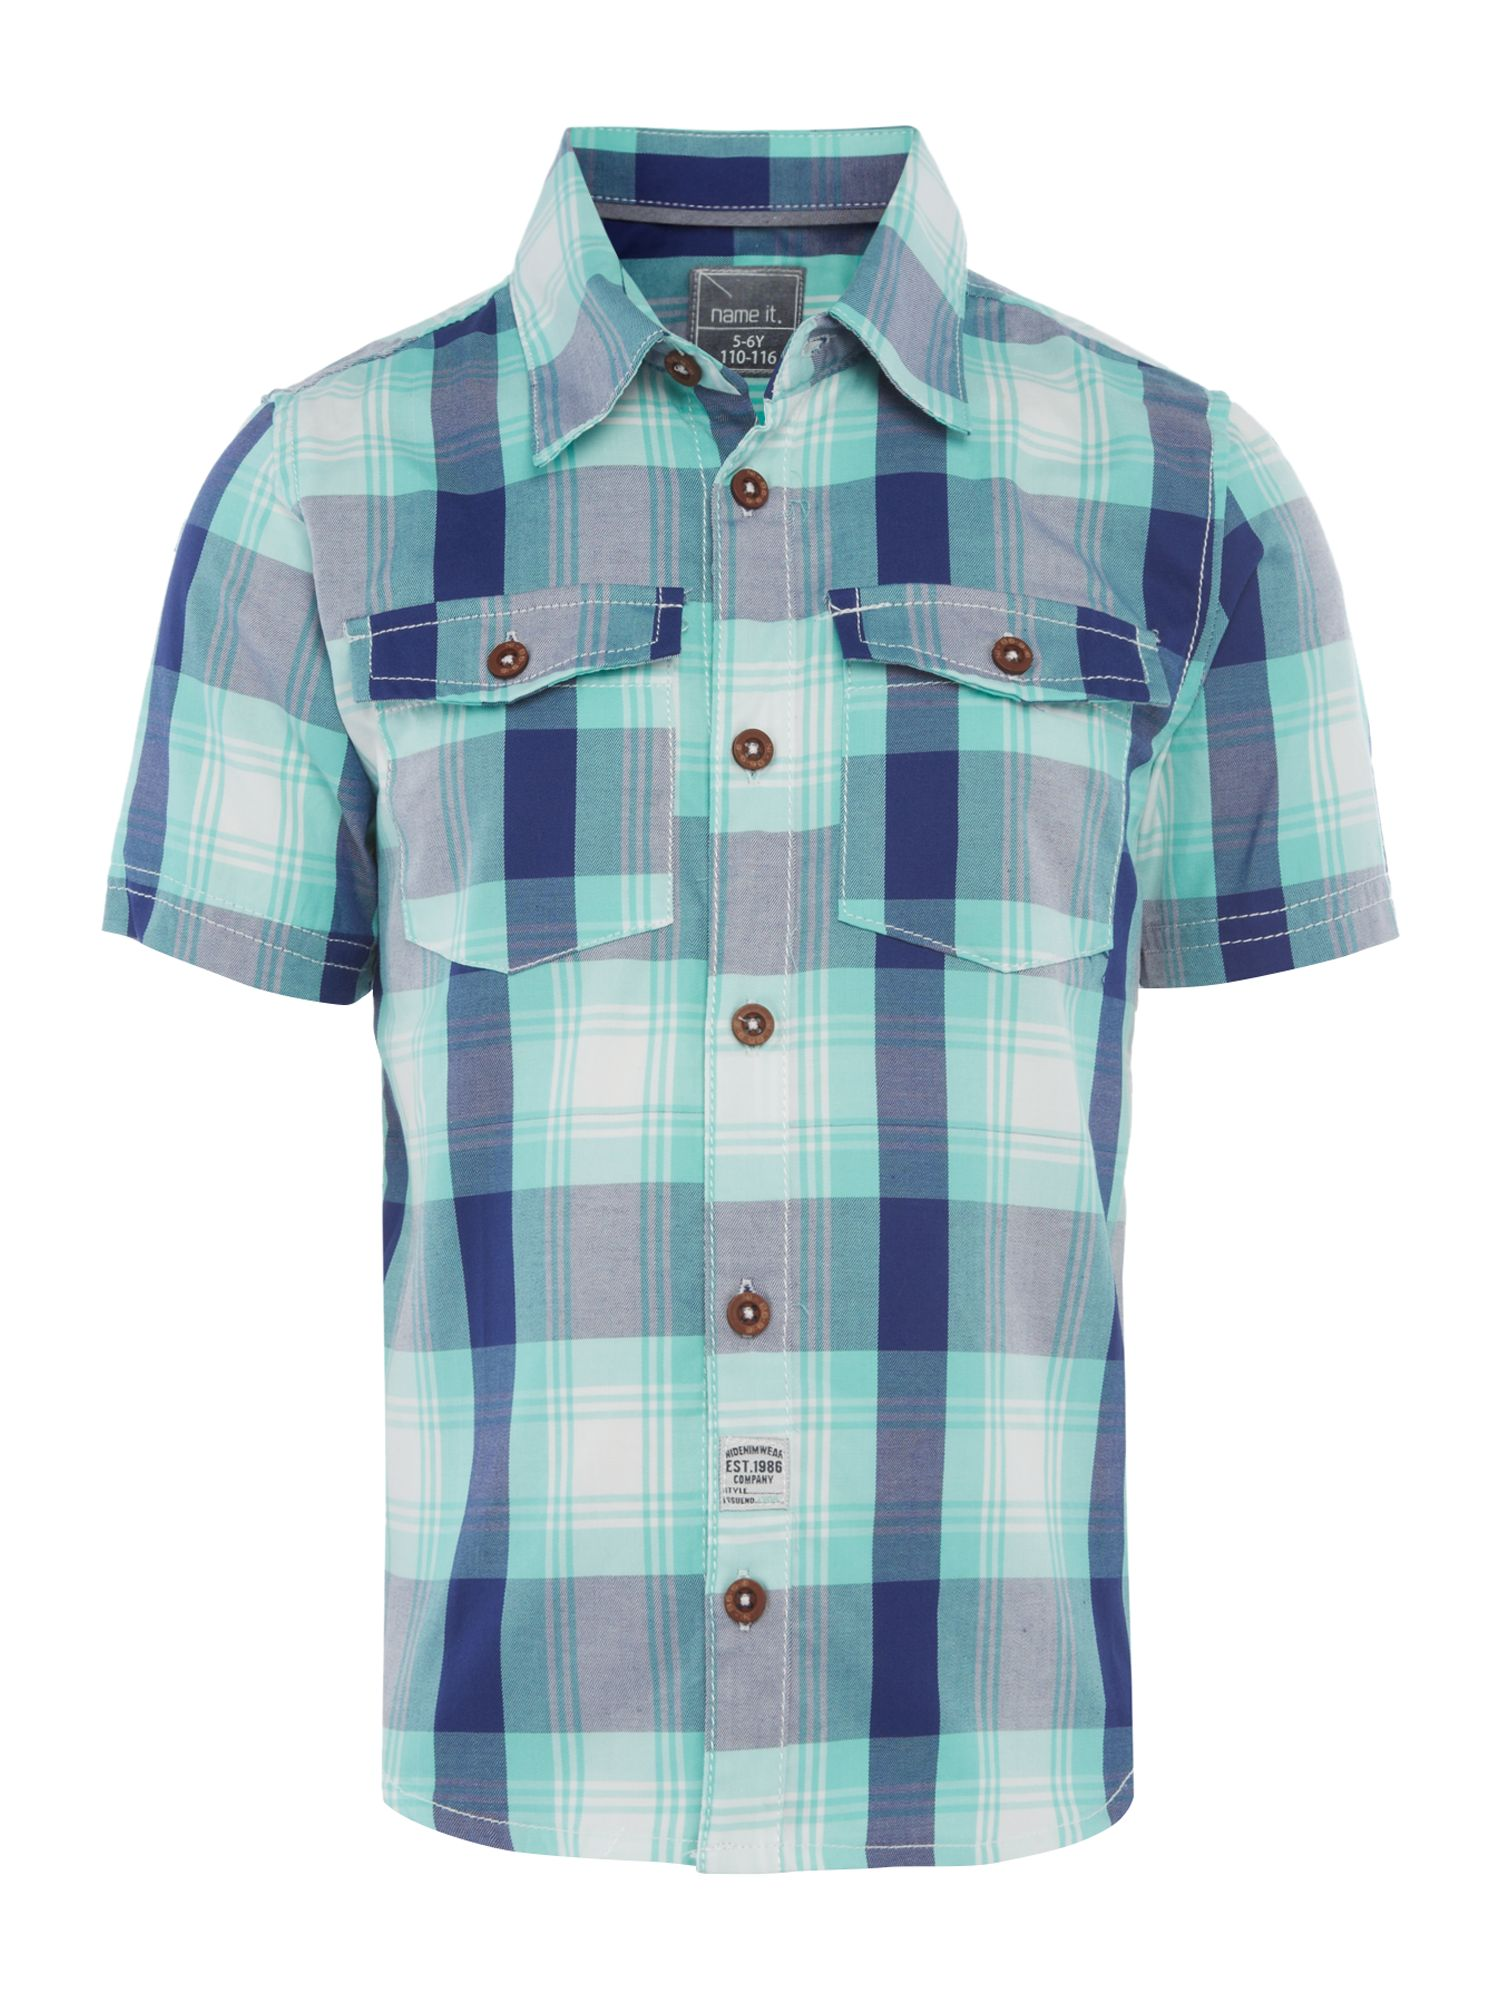 Boys check shirt with pockets